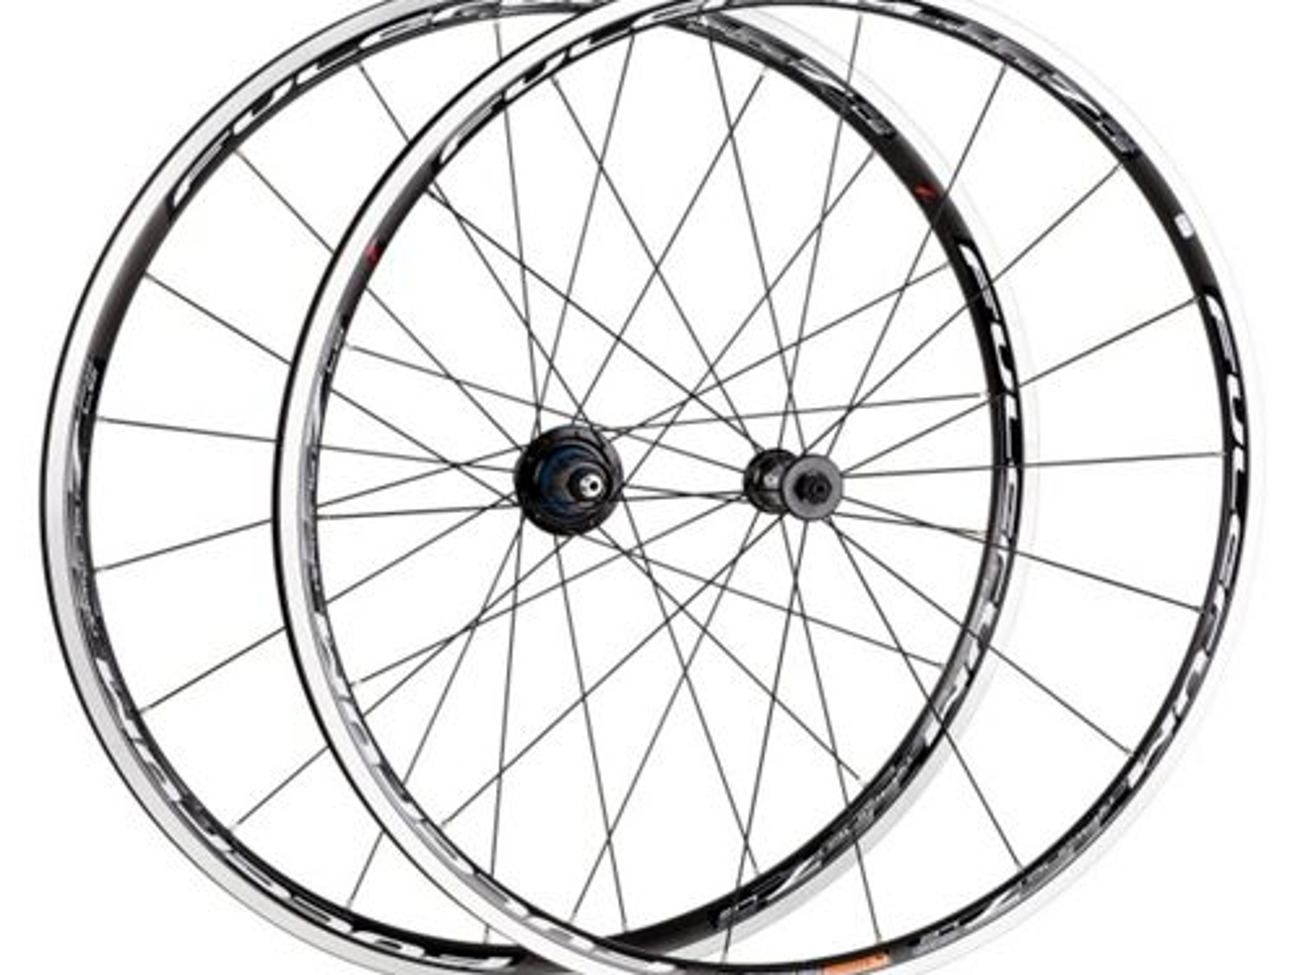 Rent Fulcrum racing 7 cx wheelset in Walsall (rent for £15